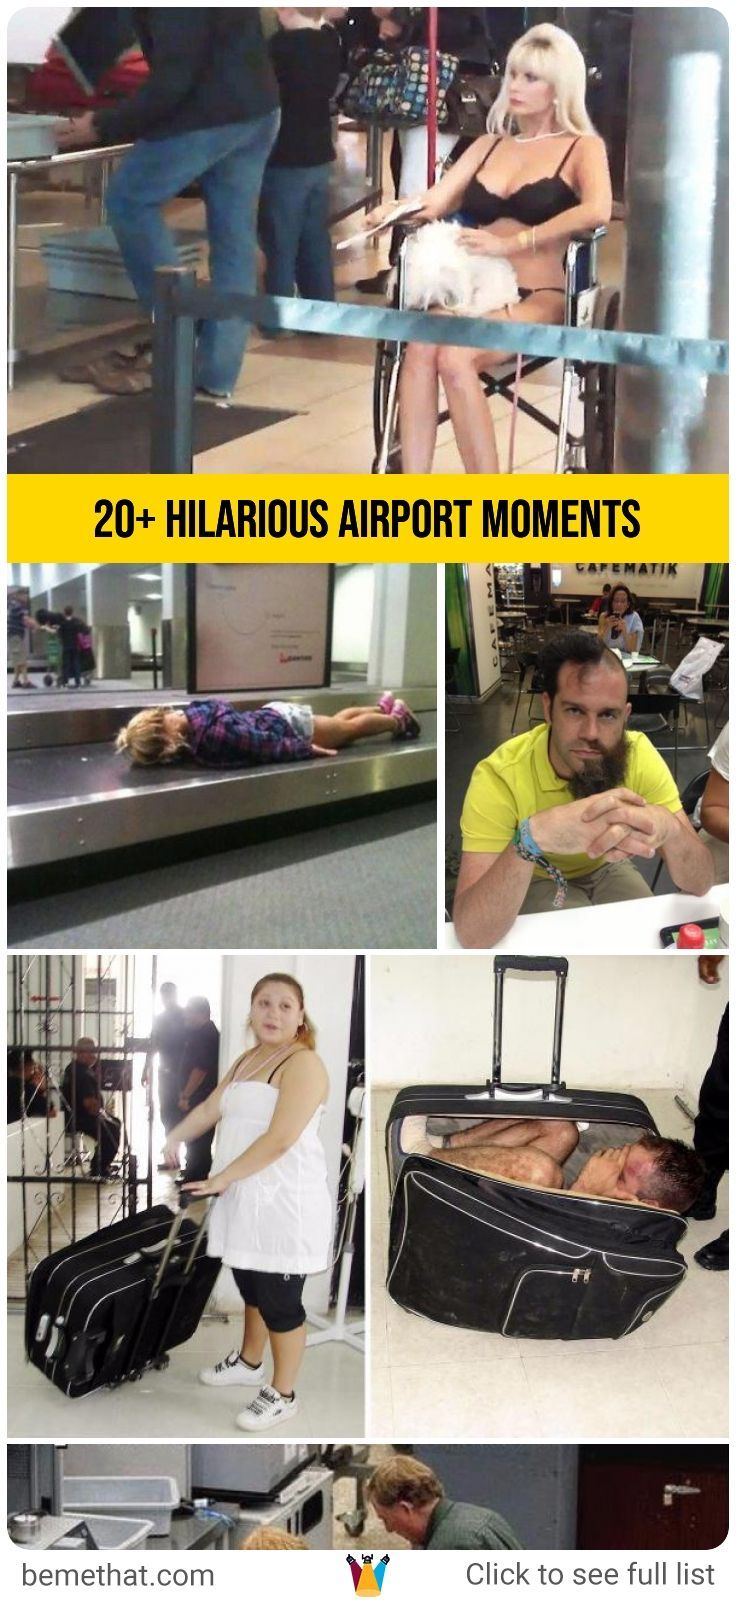 Hilarious Airport Photos : hilarious, airport, photos, Funniest, Airport, Moments, Caught, Camera, #caughtoncamera, #airportfails, #humor, #funny, #airportphotos, #weird, #funnymoment…, Funny, Airport,, Hilarious,